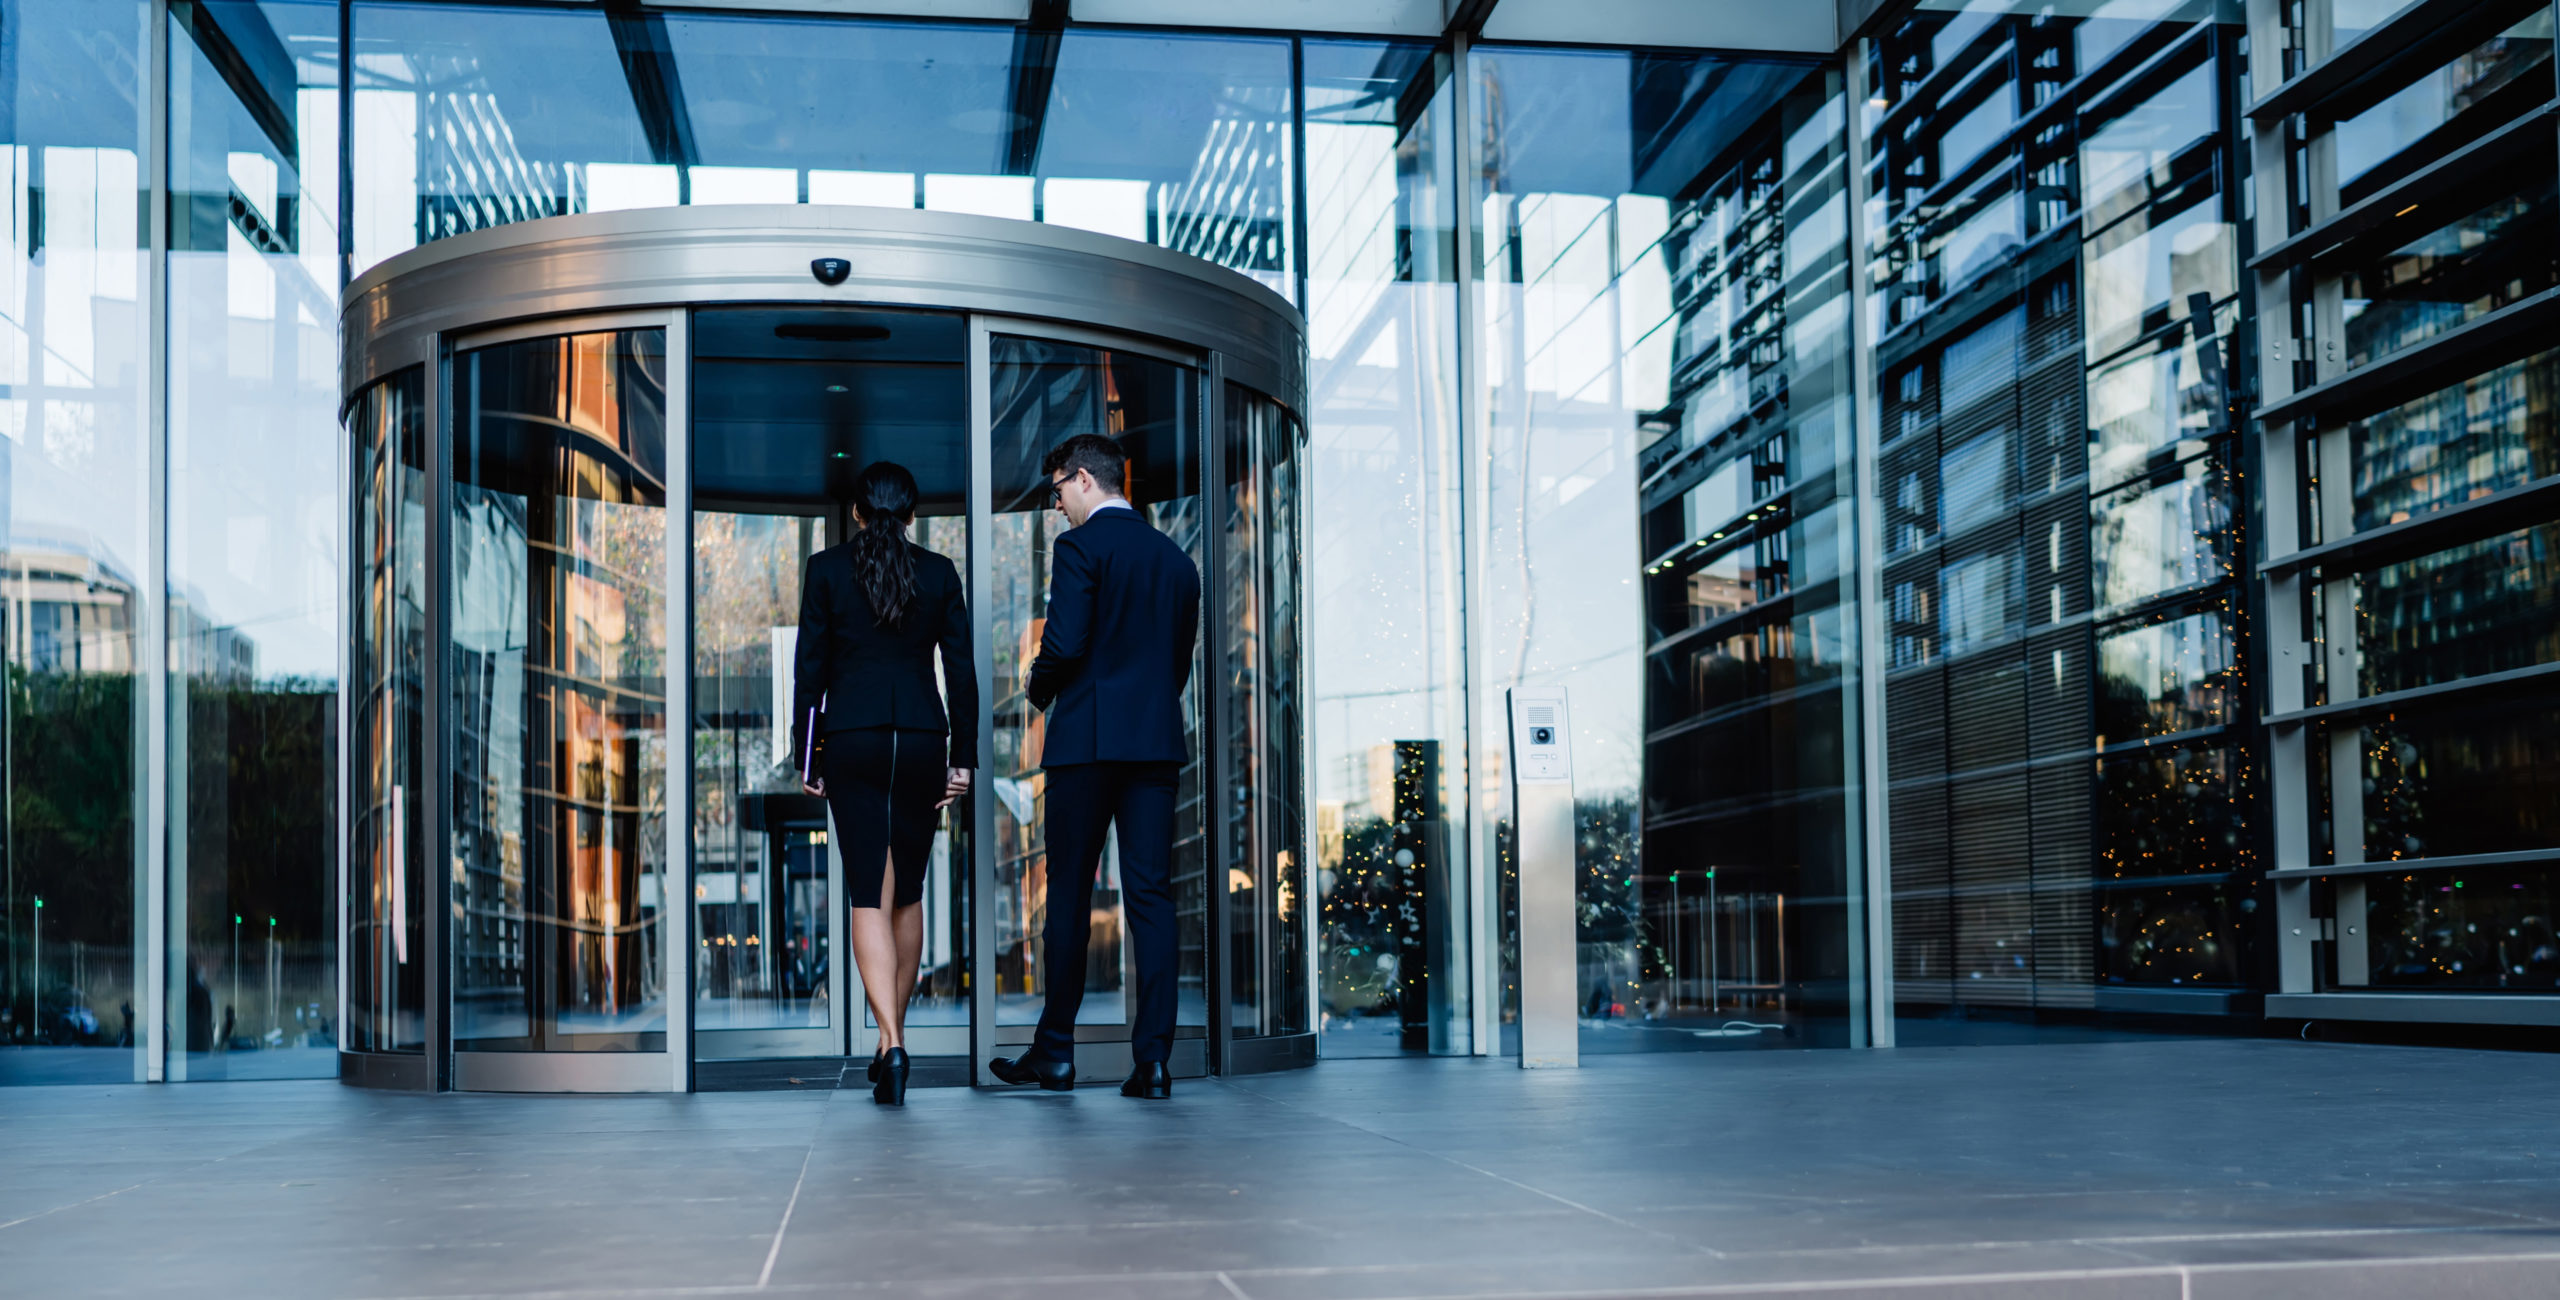 Back view of elegant man and woman walking into round revolving doors while entering contemporary glass skyscraper building of corporation office